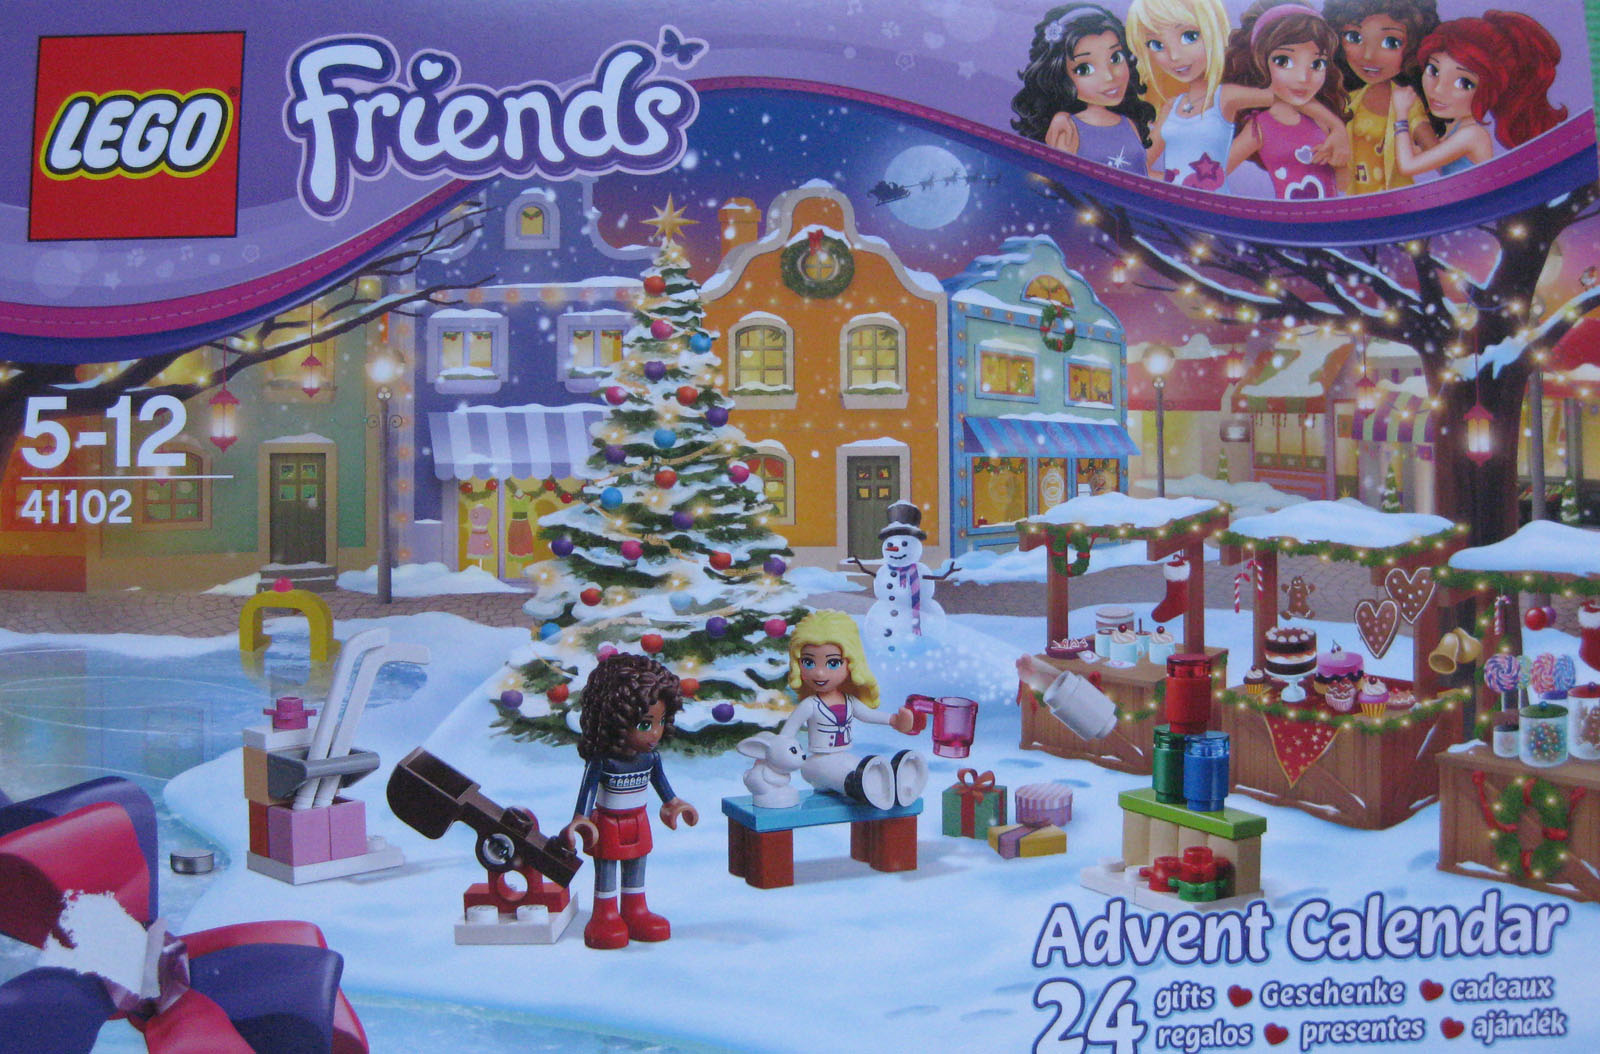 LEGO A1403856 Calendrier Avent Friends Amazon Jeux et